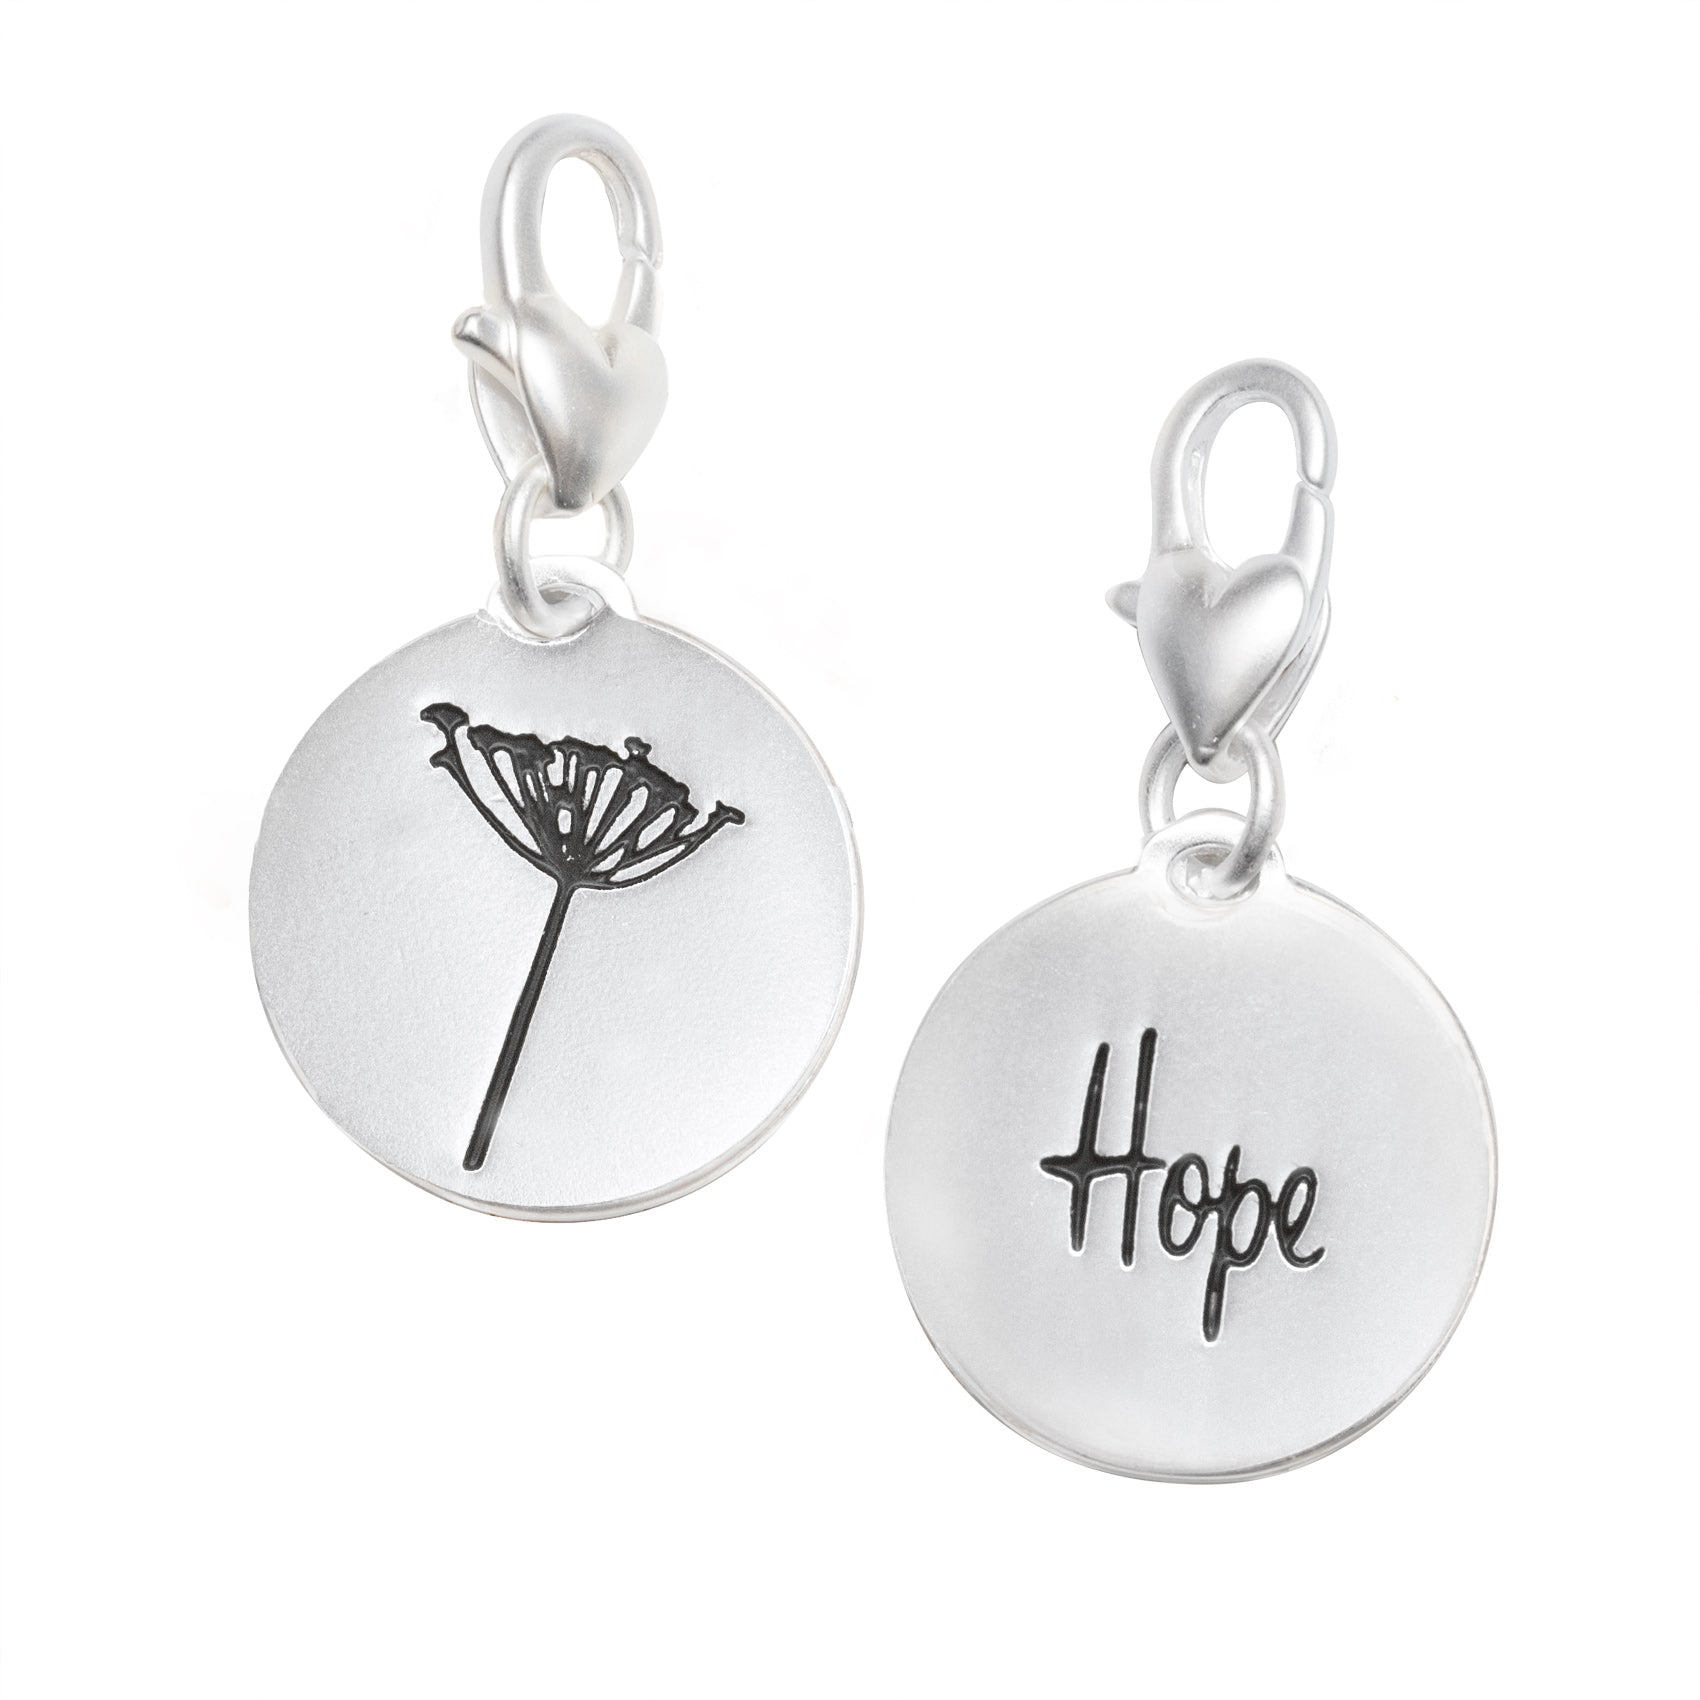 Heartfelt Emotions Silver 1-Tone Medallion - Dandelion